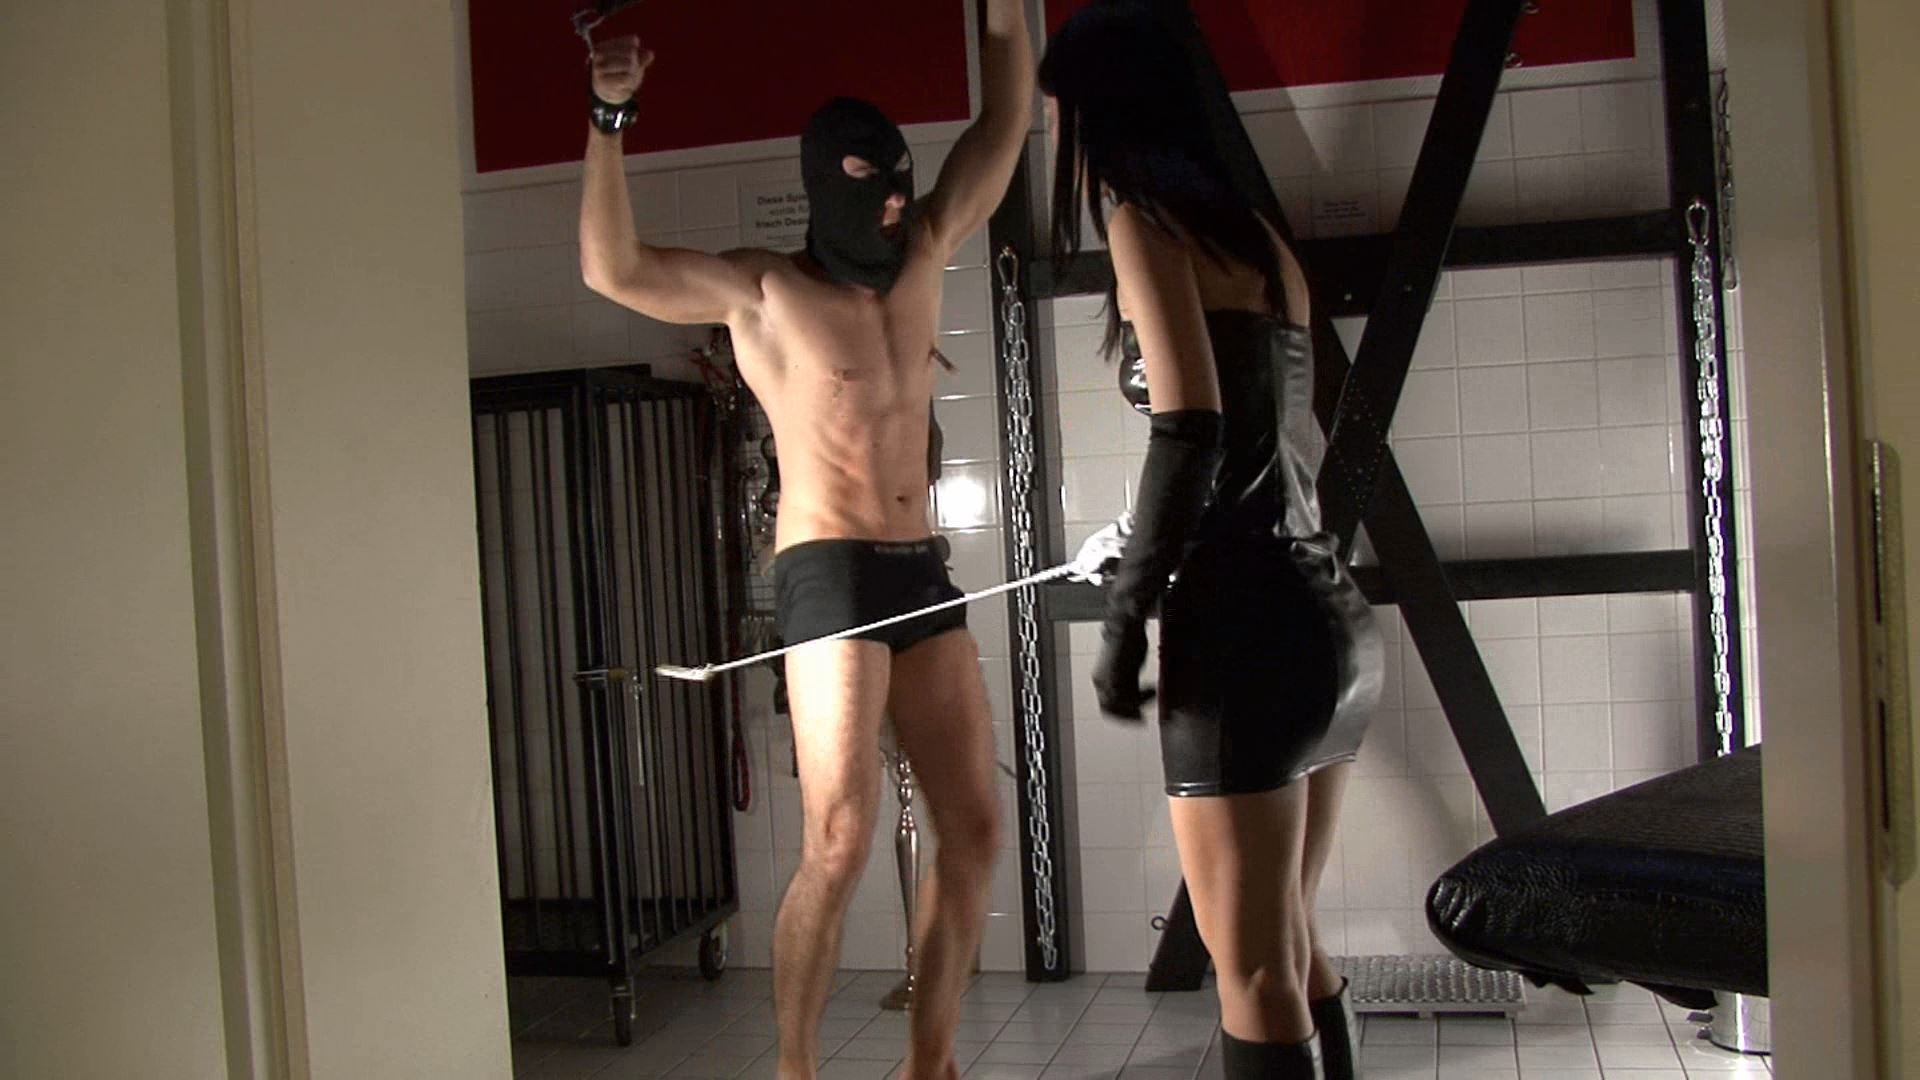 Mistress Chanel In Scene: Suffer Slave - CLIPS4SALE / CRUSH PASSION - FULL HD/1080p/MP4